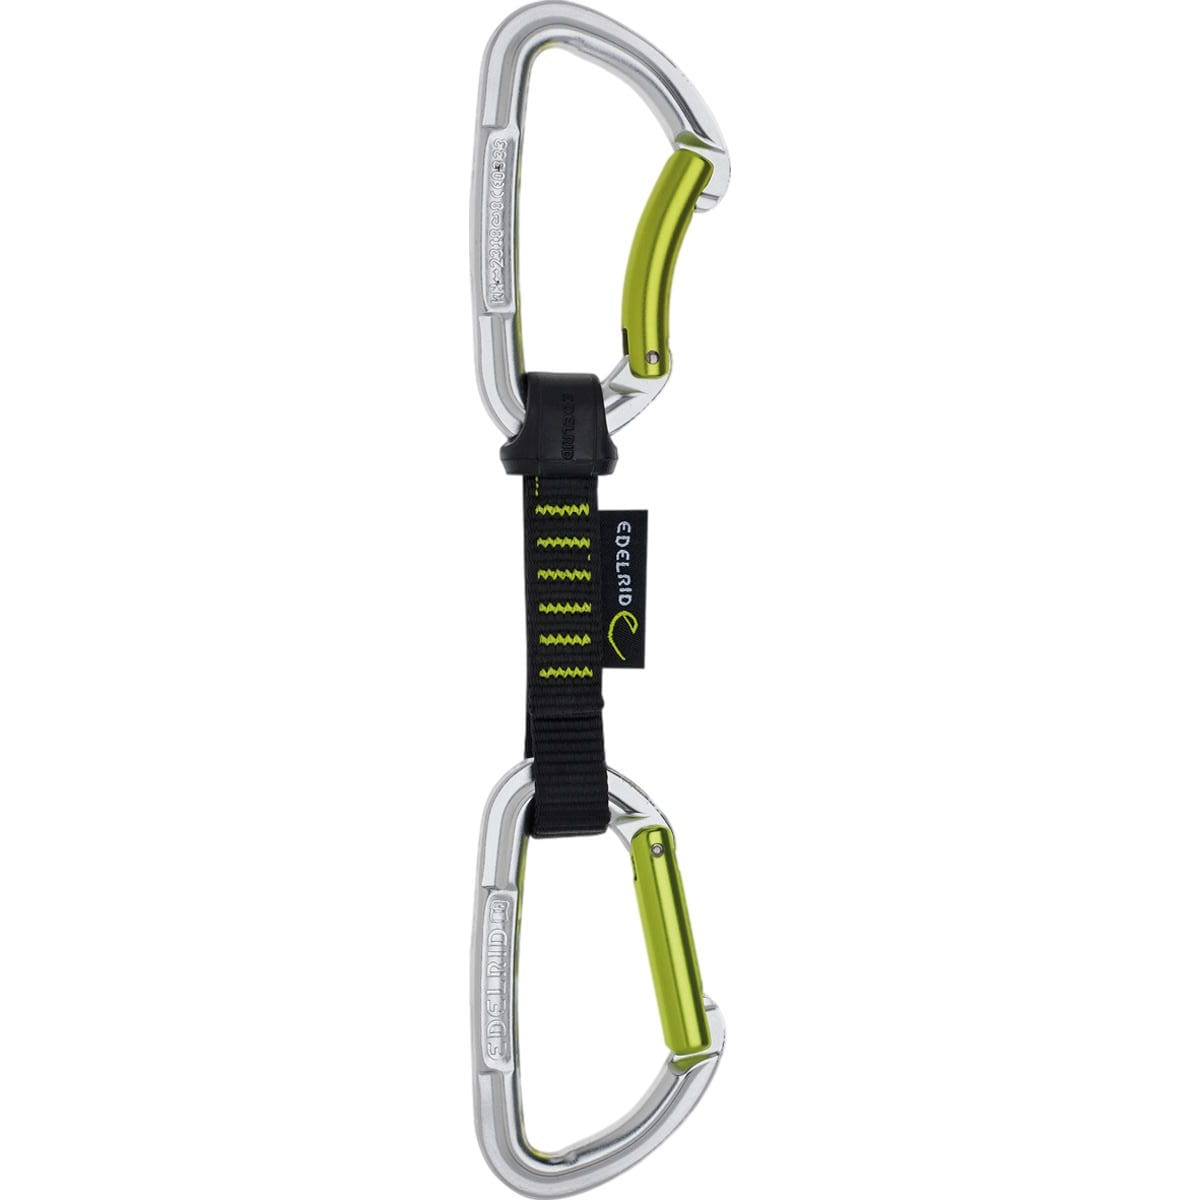 Edelrid Slash Set 10 cm - Express-Set - Bild 1